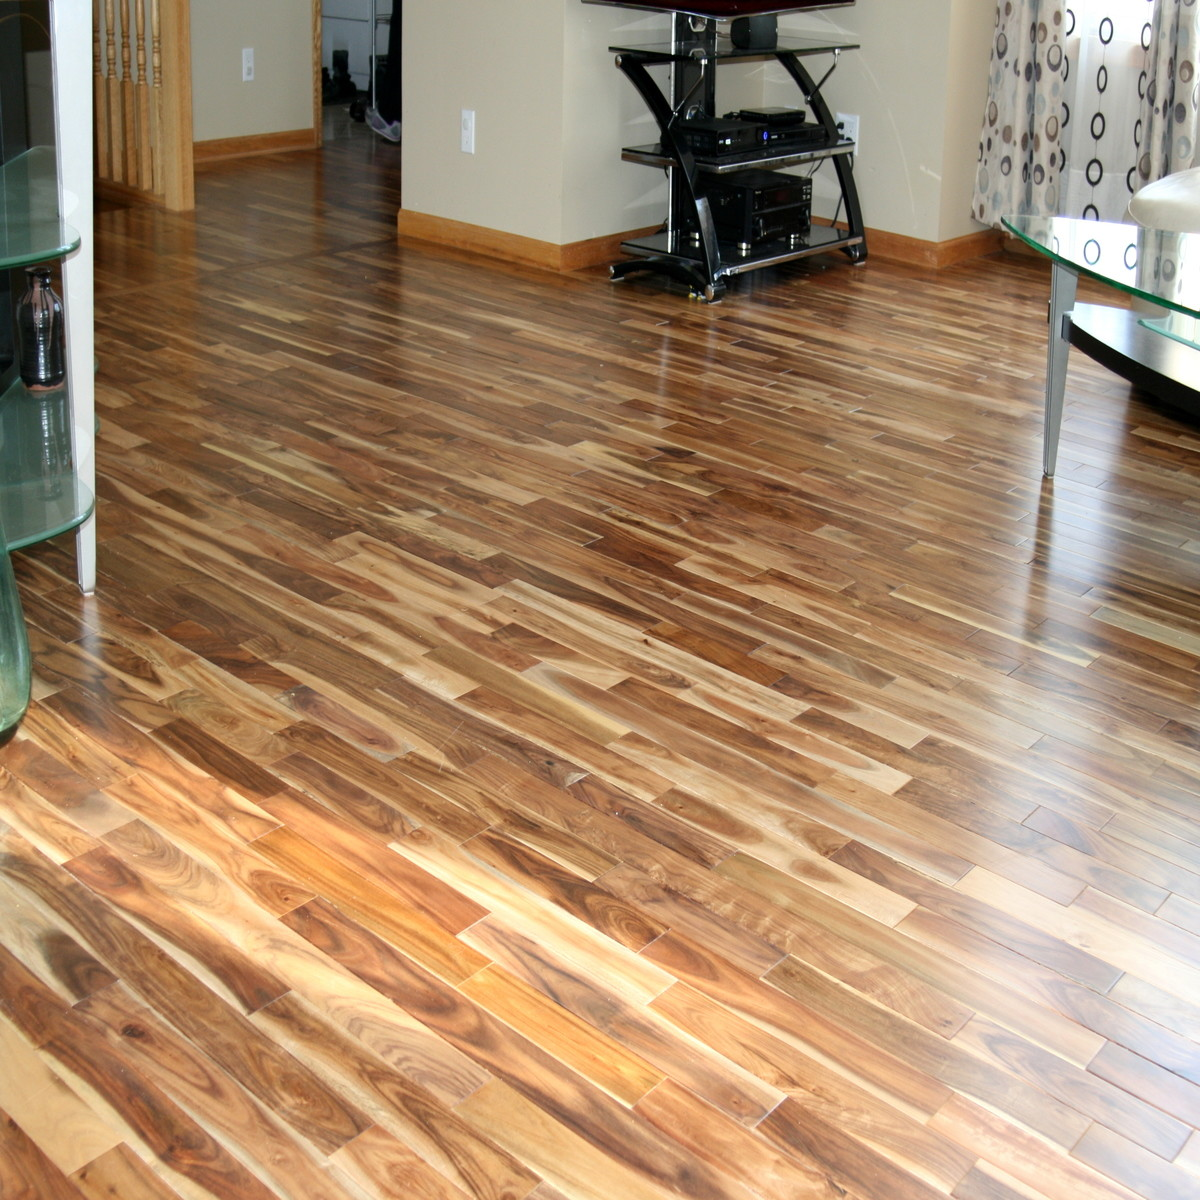 Prefinished hardwood flooring reviews acai carpet sofa for Hardwood flooring reviews